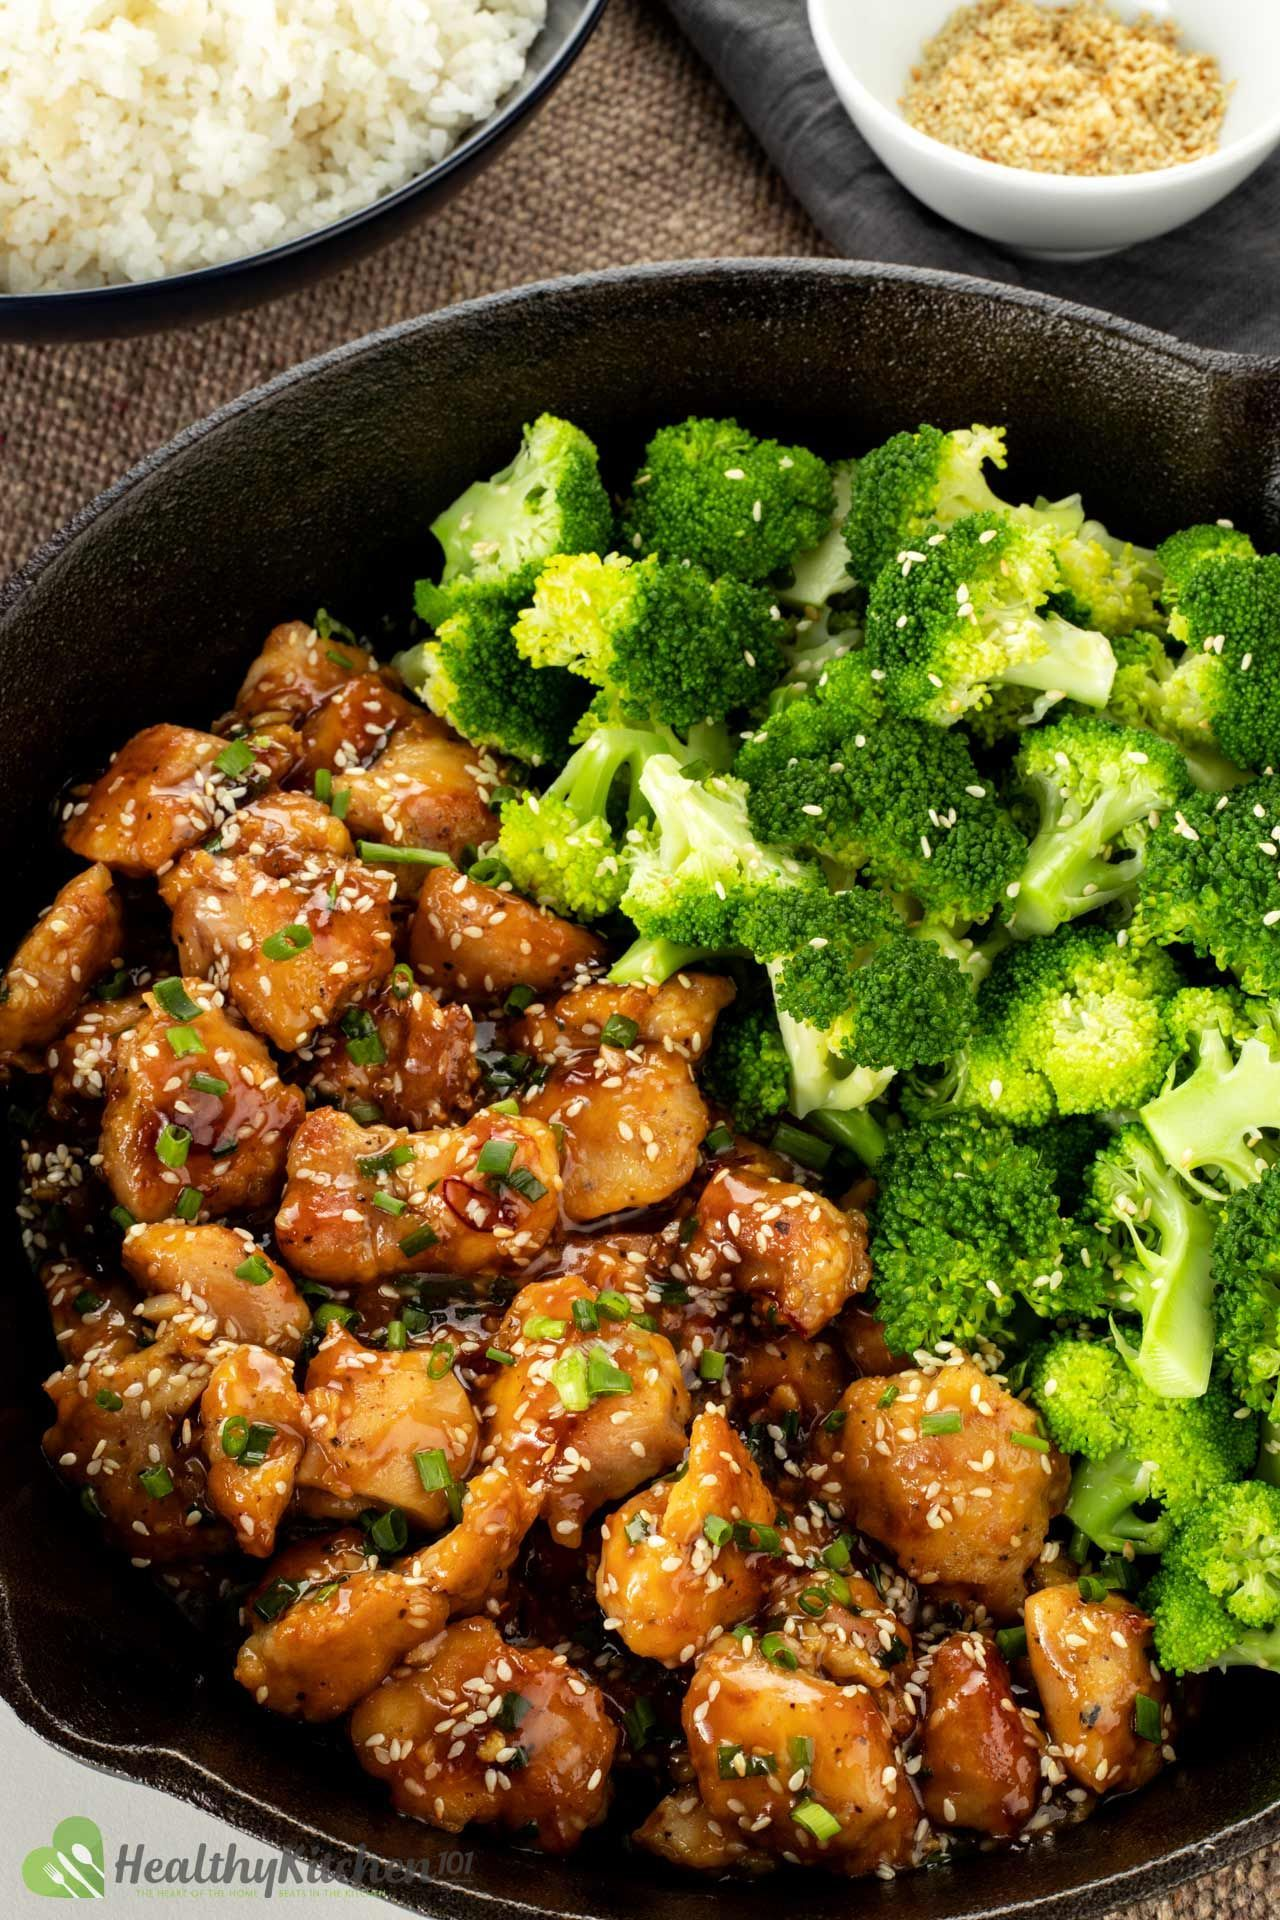 Healthy eating sesame chicken recipe A wellknown Asian